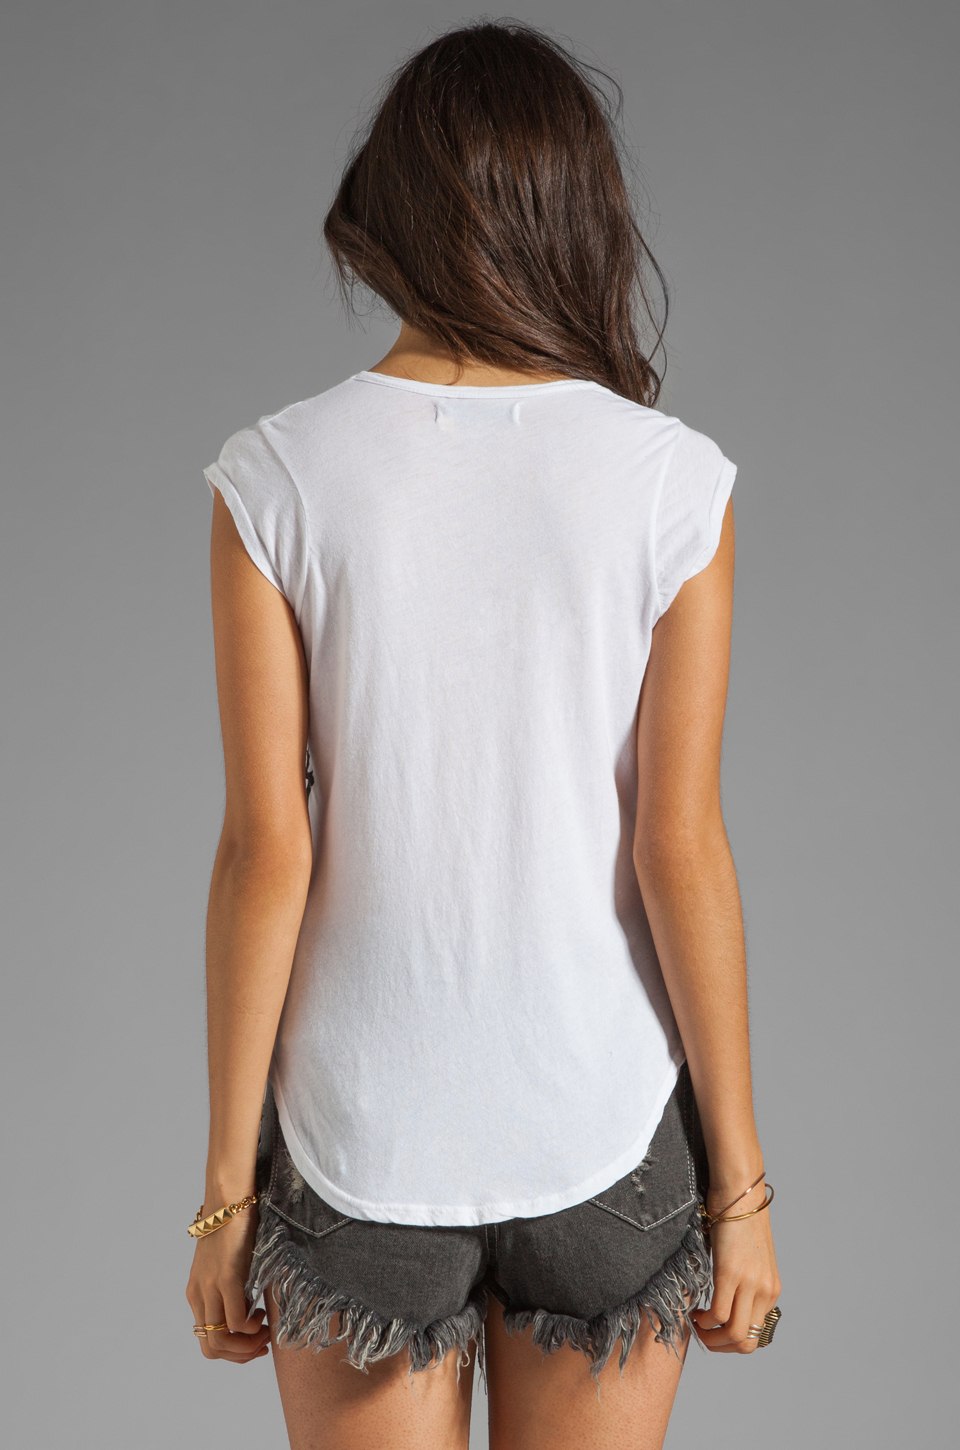 291 Restless Hearts Top in White